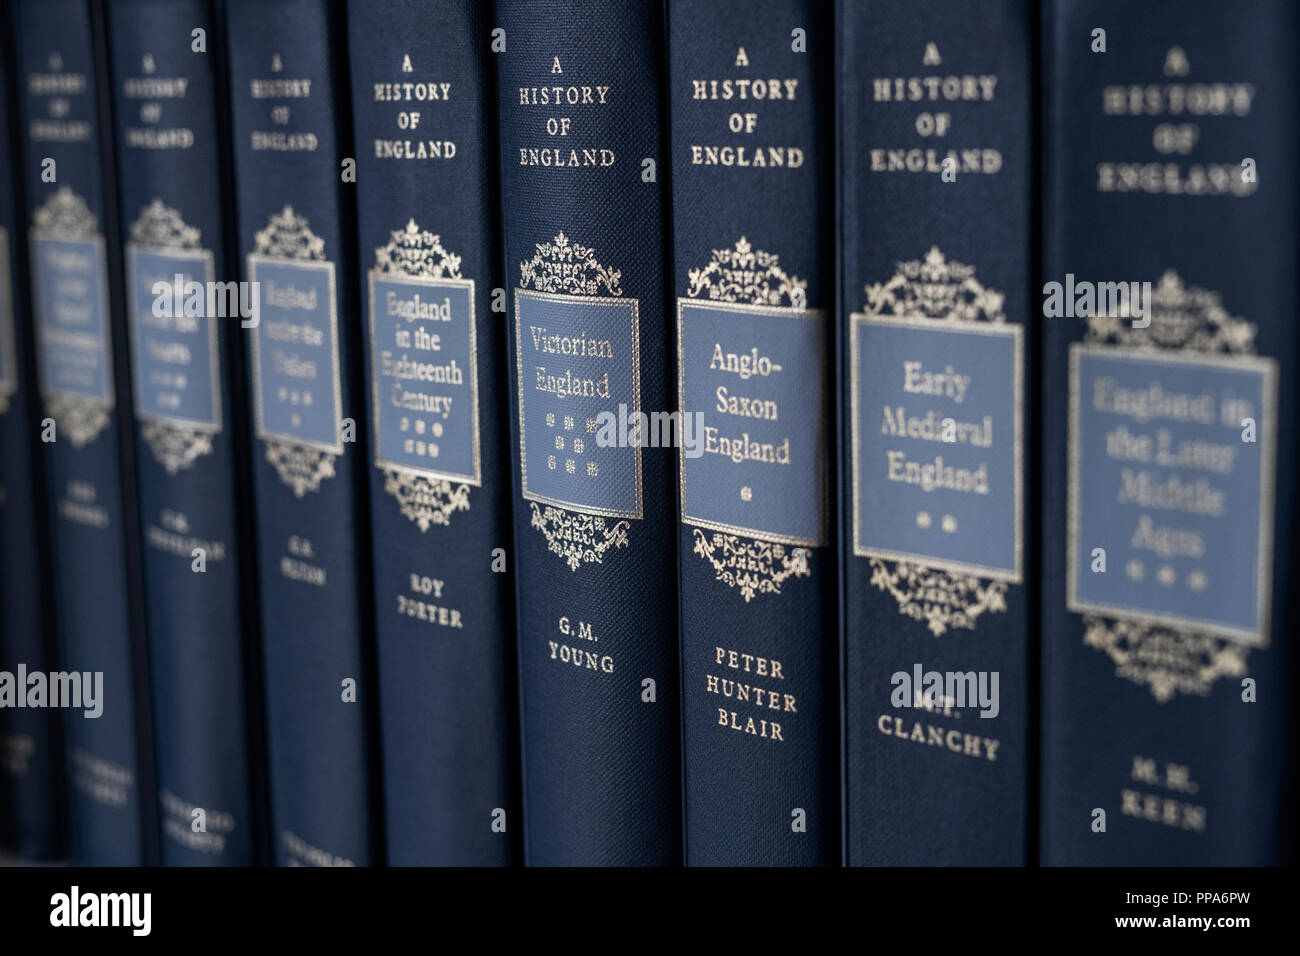 A history of england books on a shelf. selective focus. UK - Stock Image